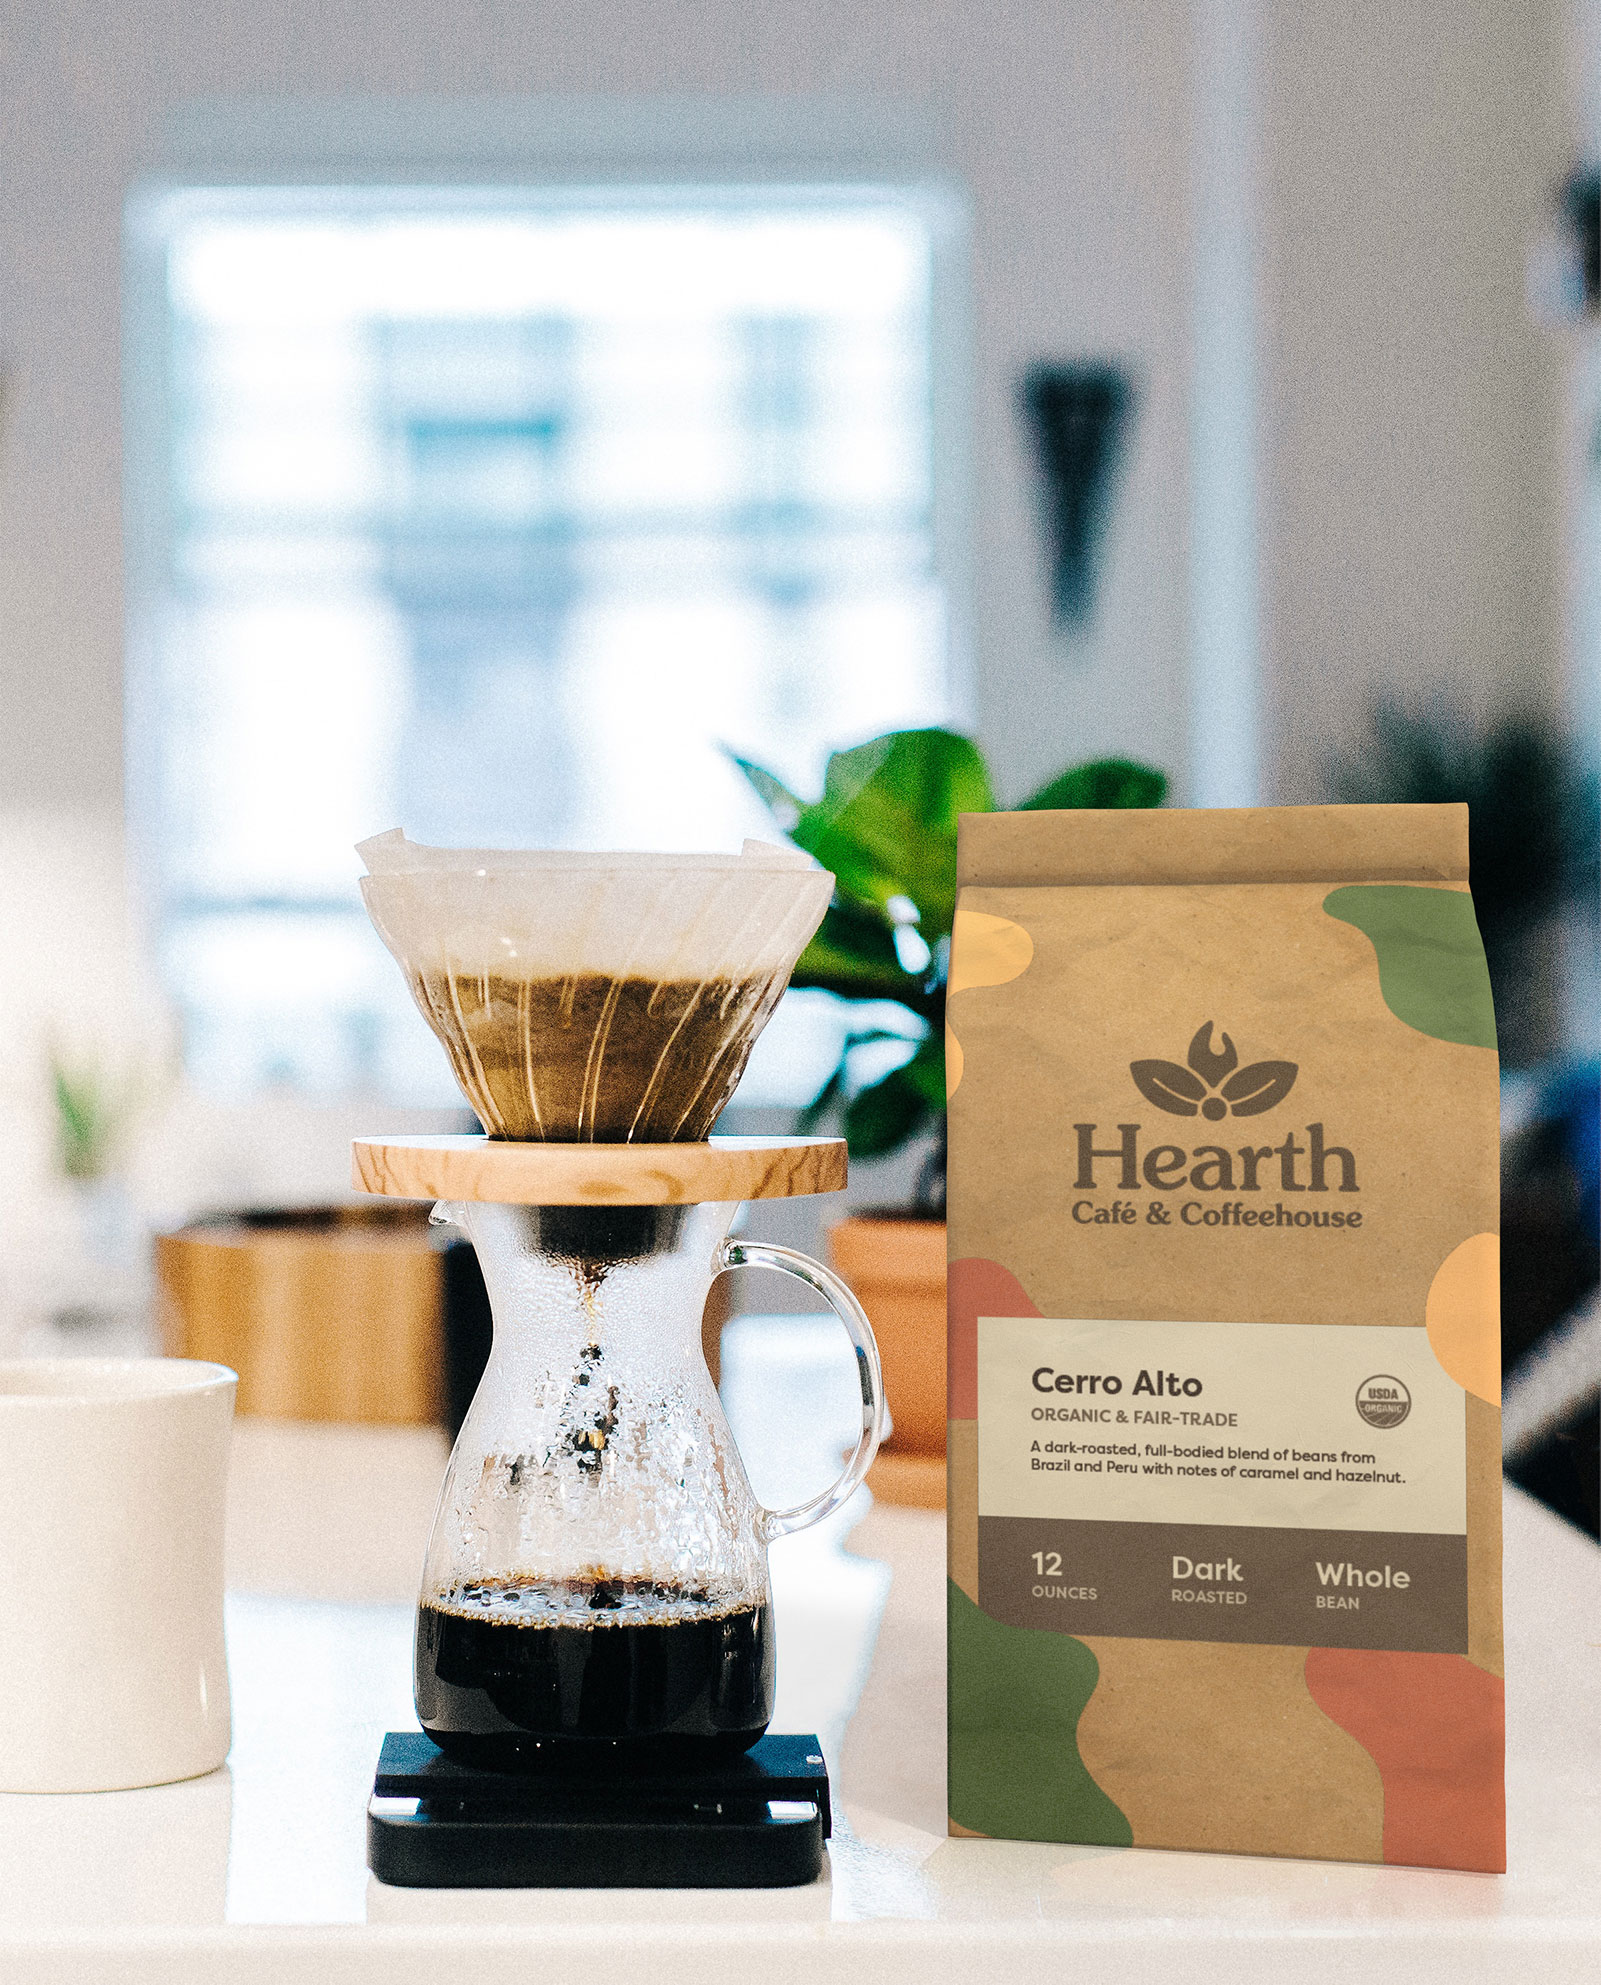 A bag of coffee with Hearth's new branding